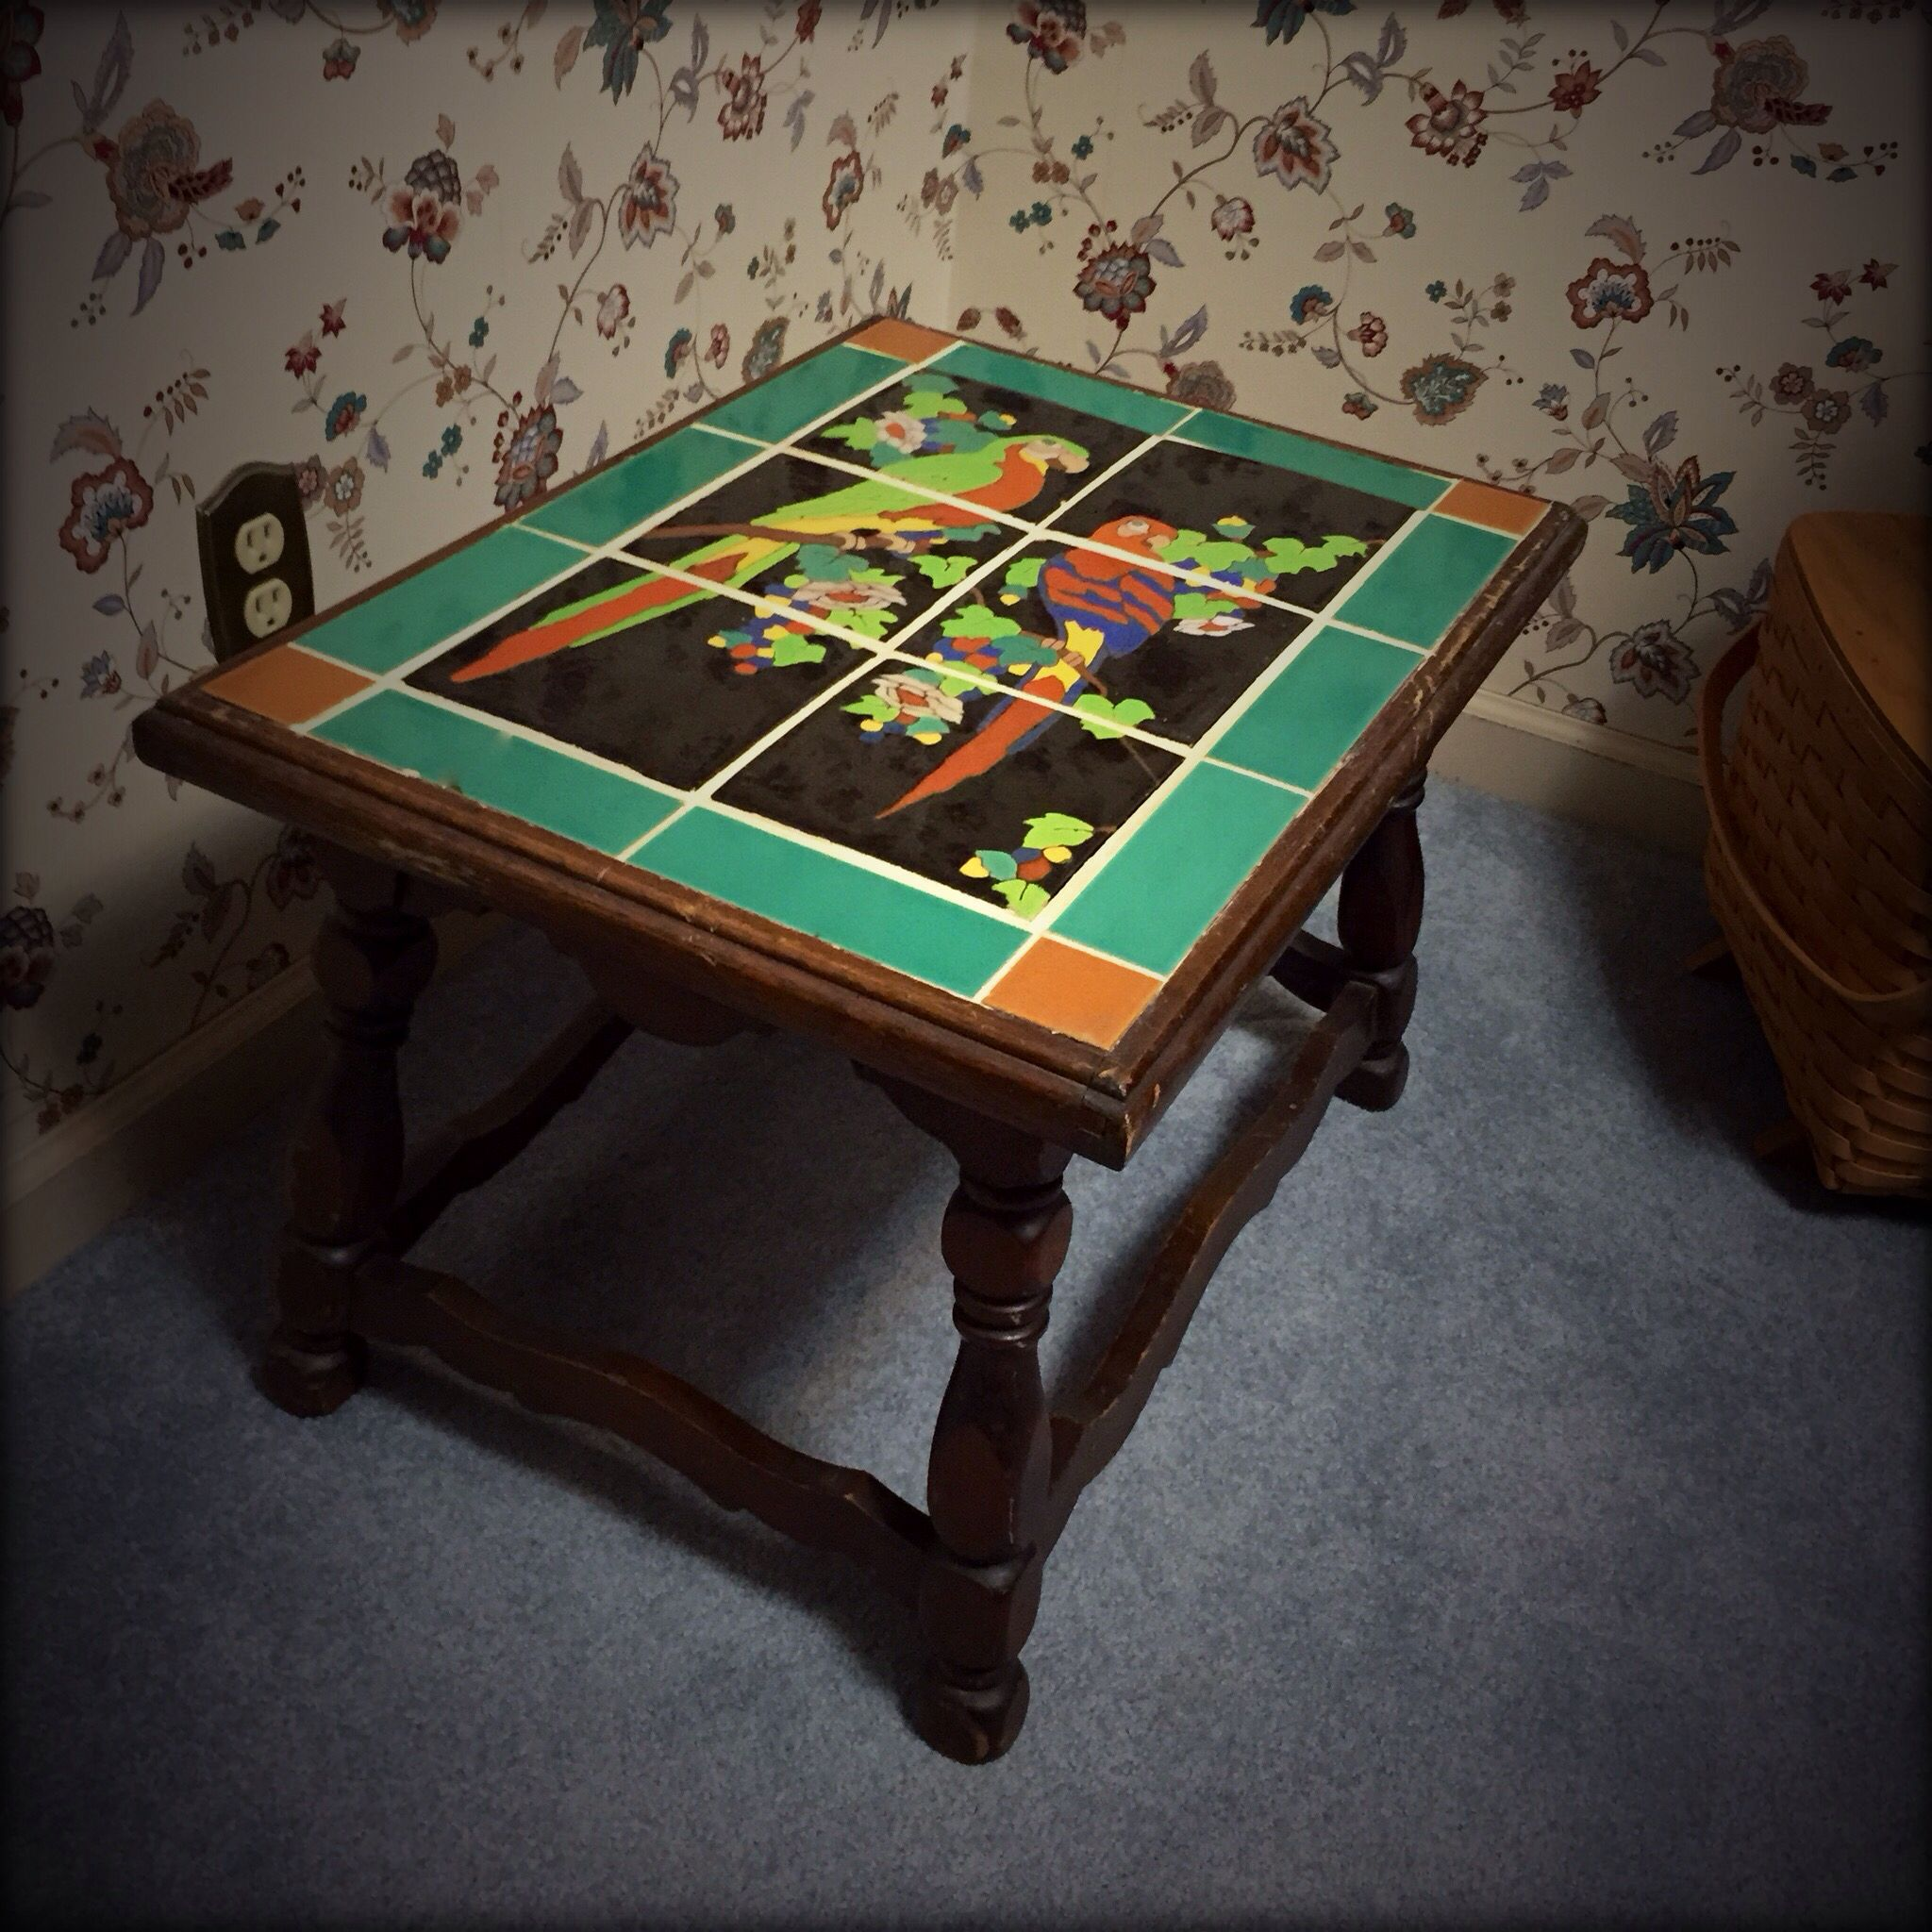 Latest local find... A Taylor Tile table. I am guessing it